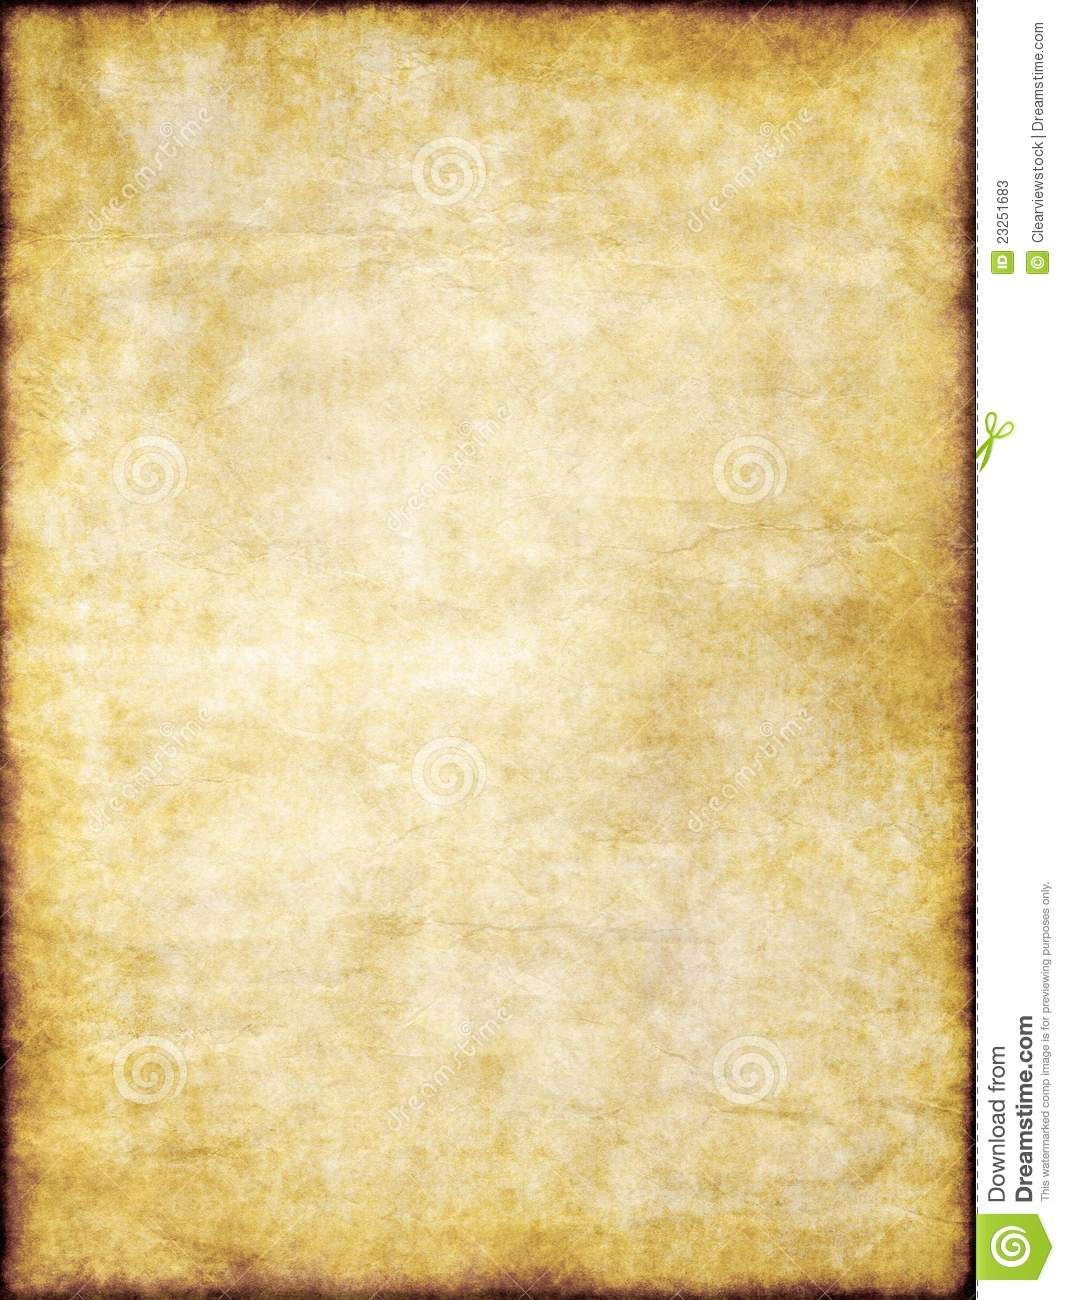 parchment style paper Download old parchment style paper images and photos over 10,172 old parchment style paper pictures to choose from, with no signup needed download in under 30 seconds.